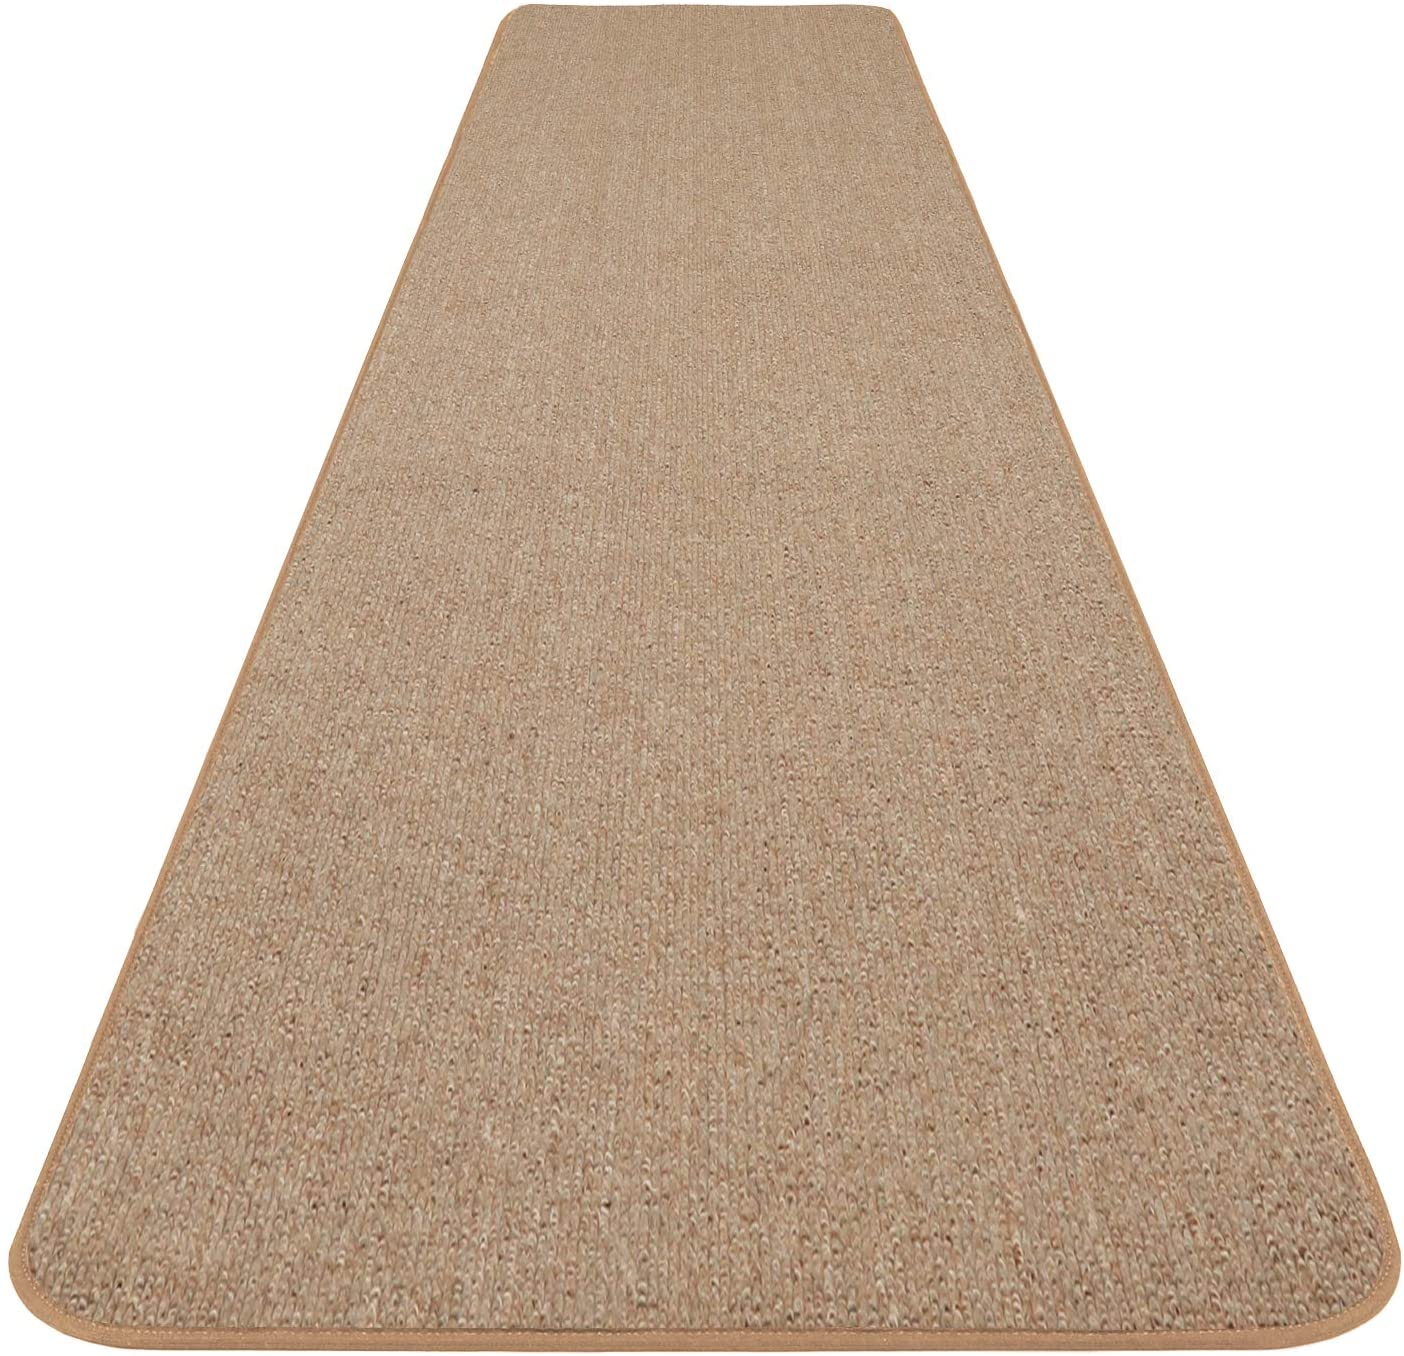 House, Home and More Skid-Resistant Carpet Runner - Pebble Beige - 8 Feet X 48 Inches